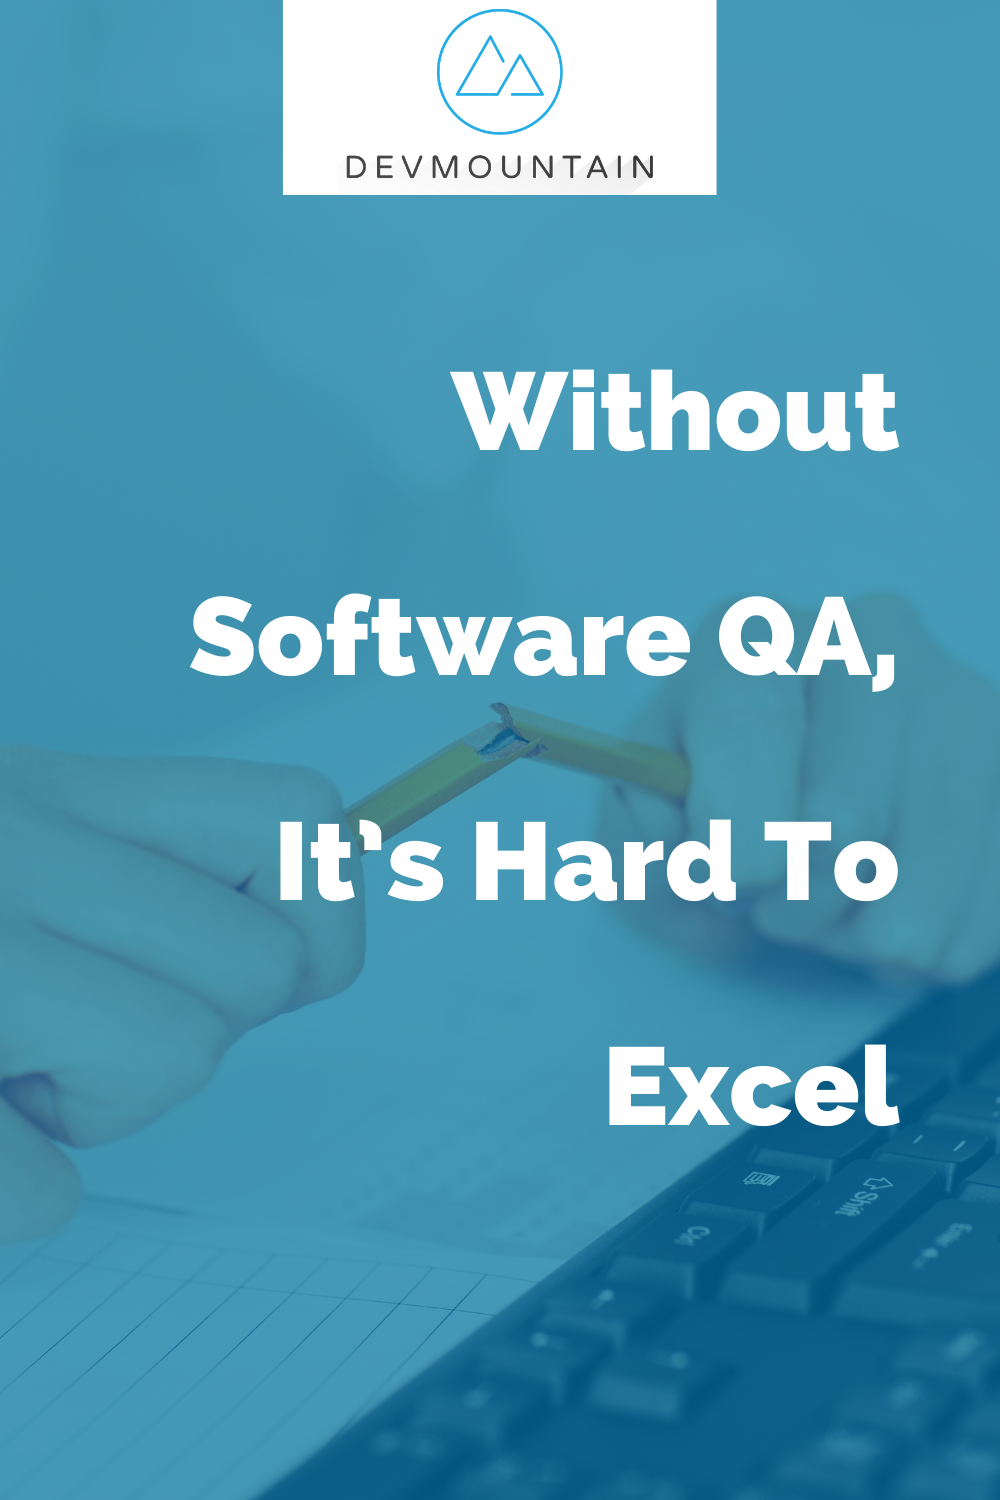 Without Software QA, It's Hard To Excel